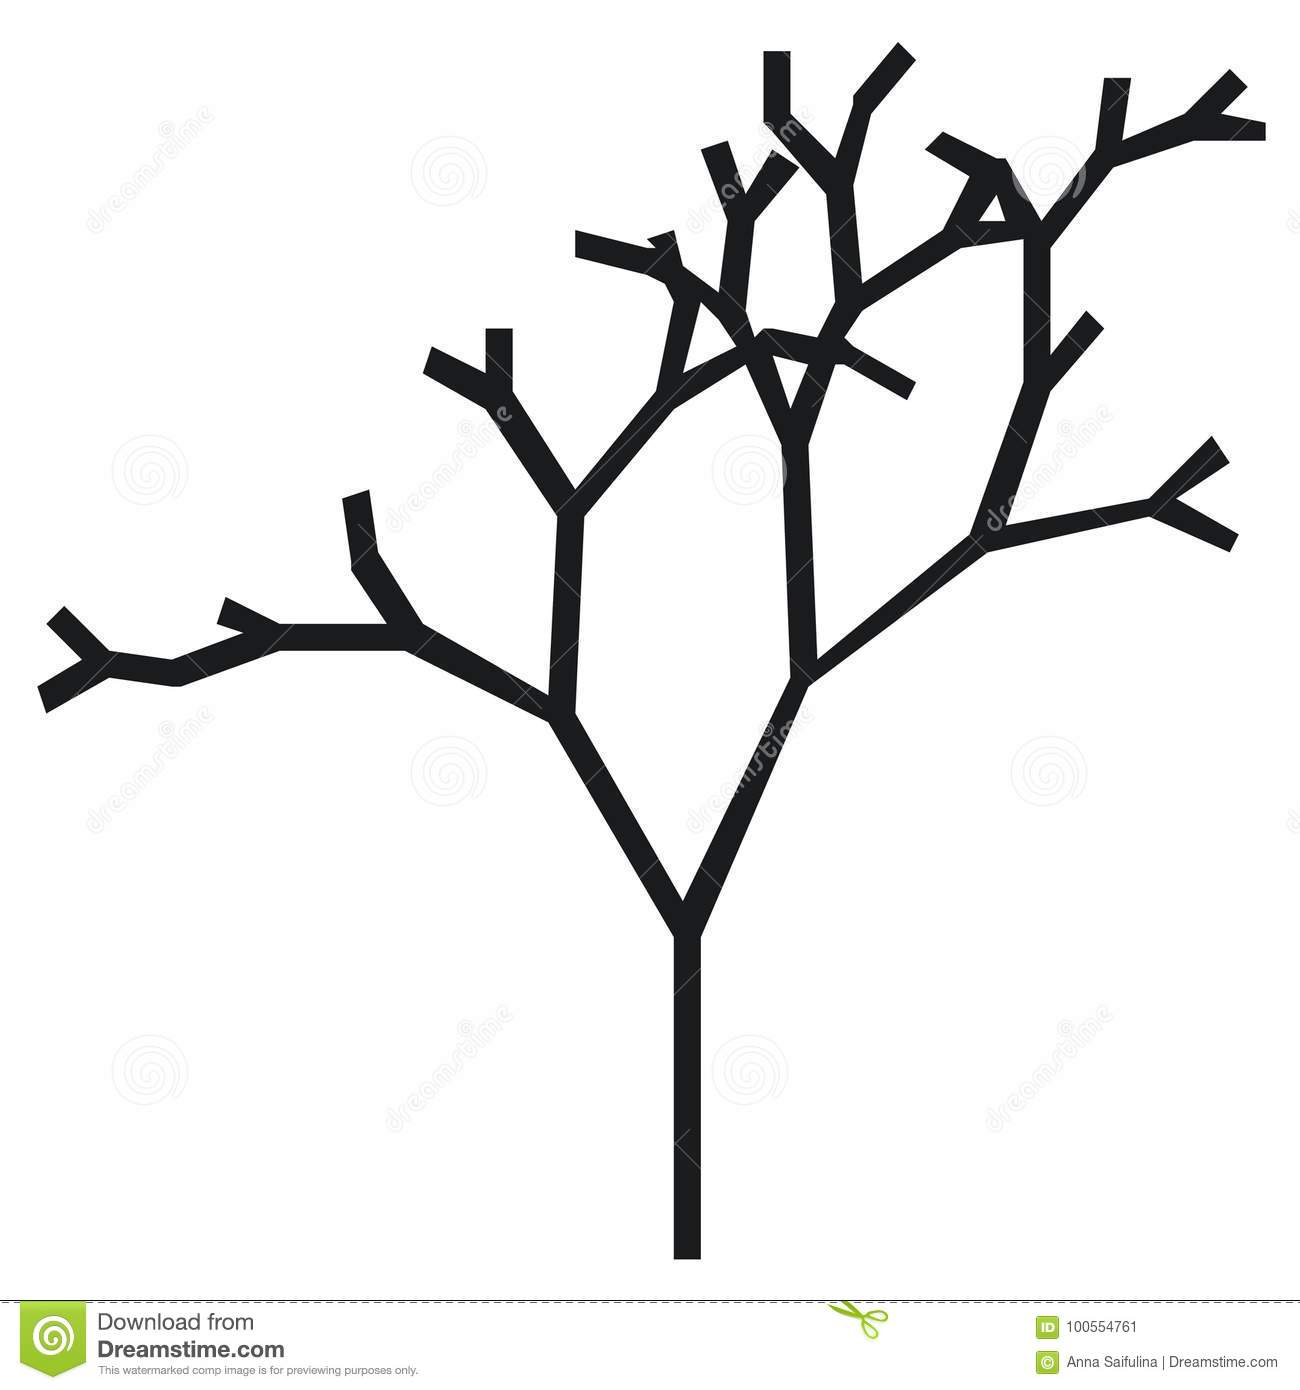 The Silhouette Of A Tree With A Trunk And Branches Without Leaves